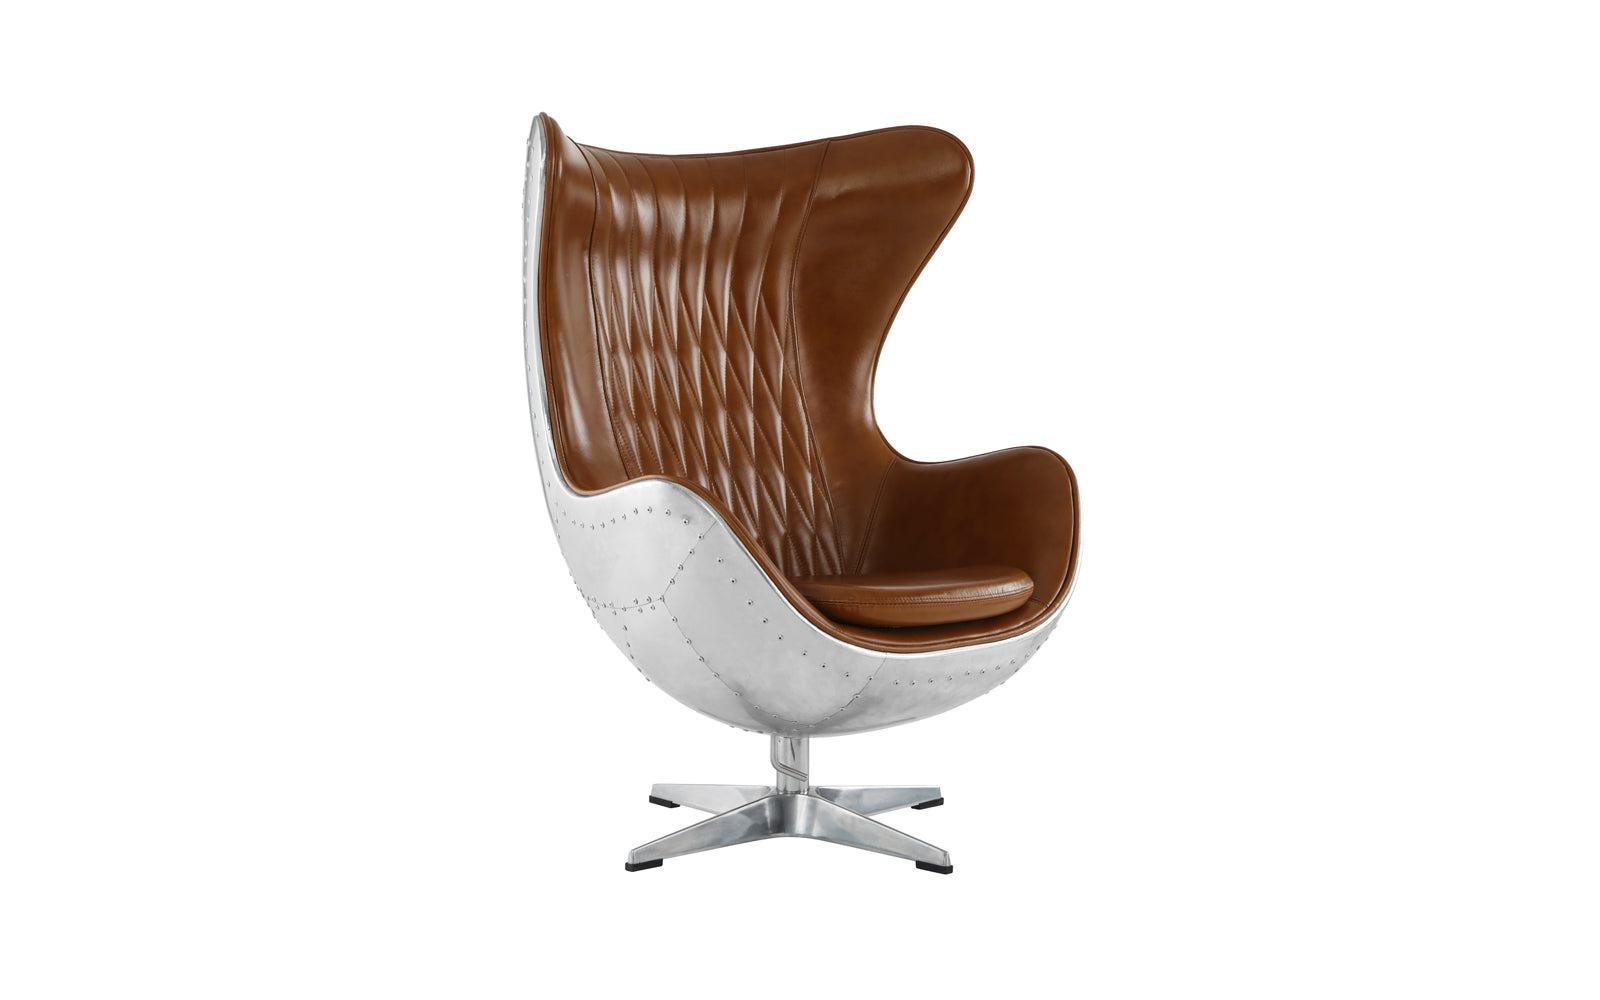 Leather Egg Chair Image